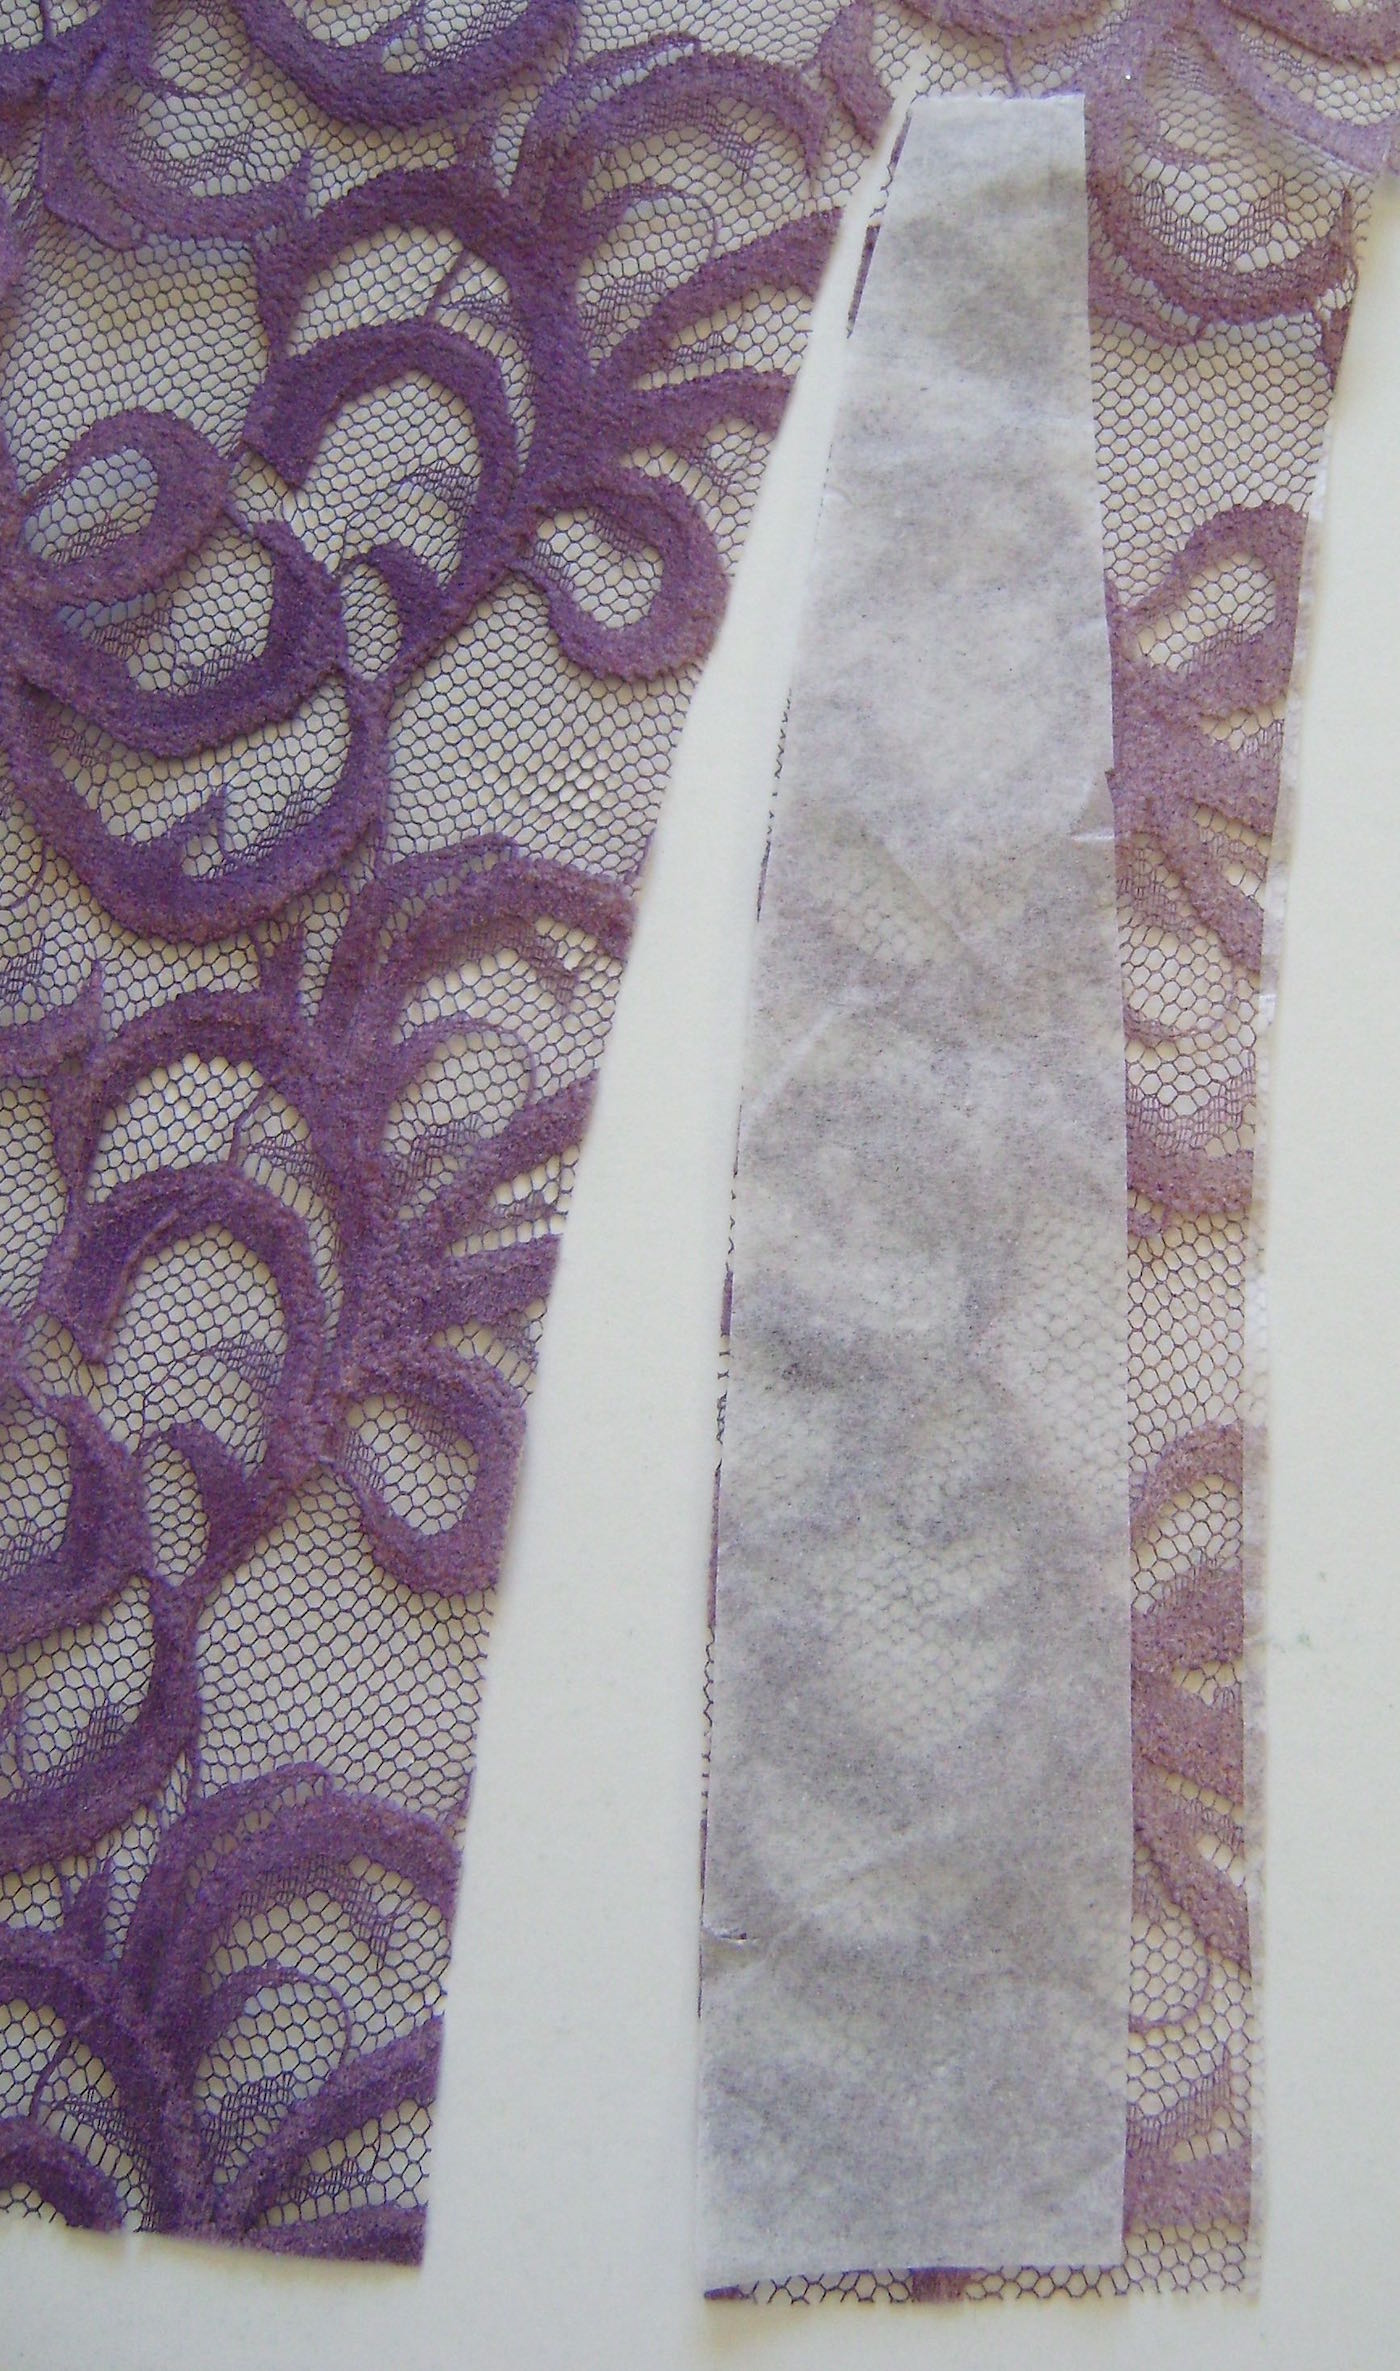 """step 4 - Following your pattern, cut out 12 pieces of lace making them ½"""" longer than the pattern. Spray the backsides of the cut pieces with adhesive."""